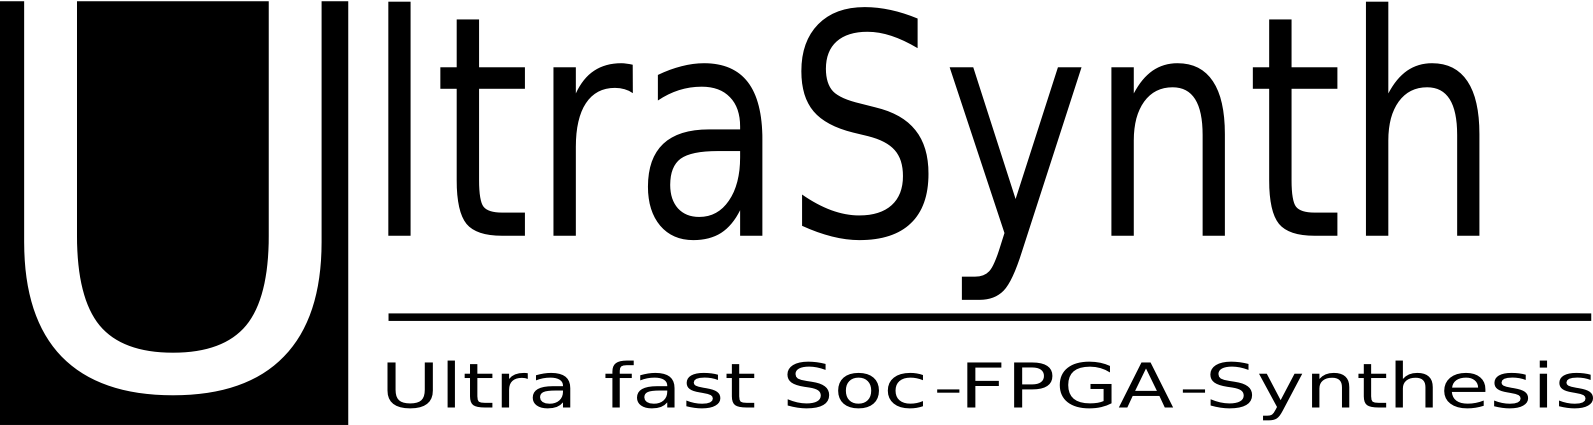 UltraSynth logo